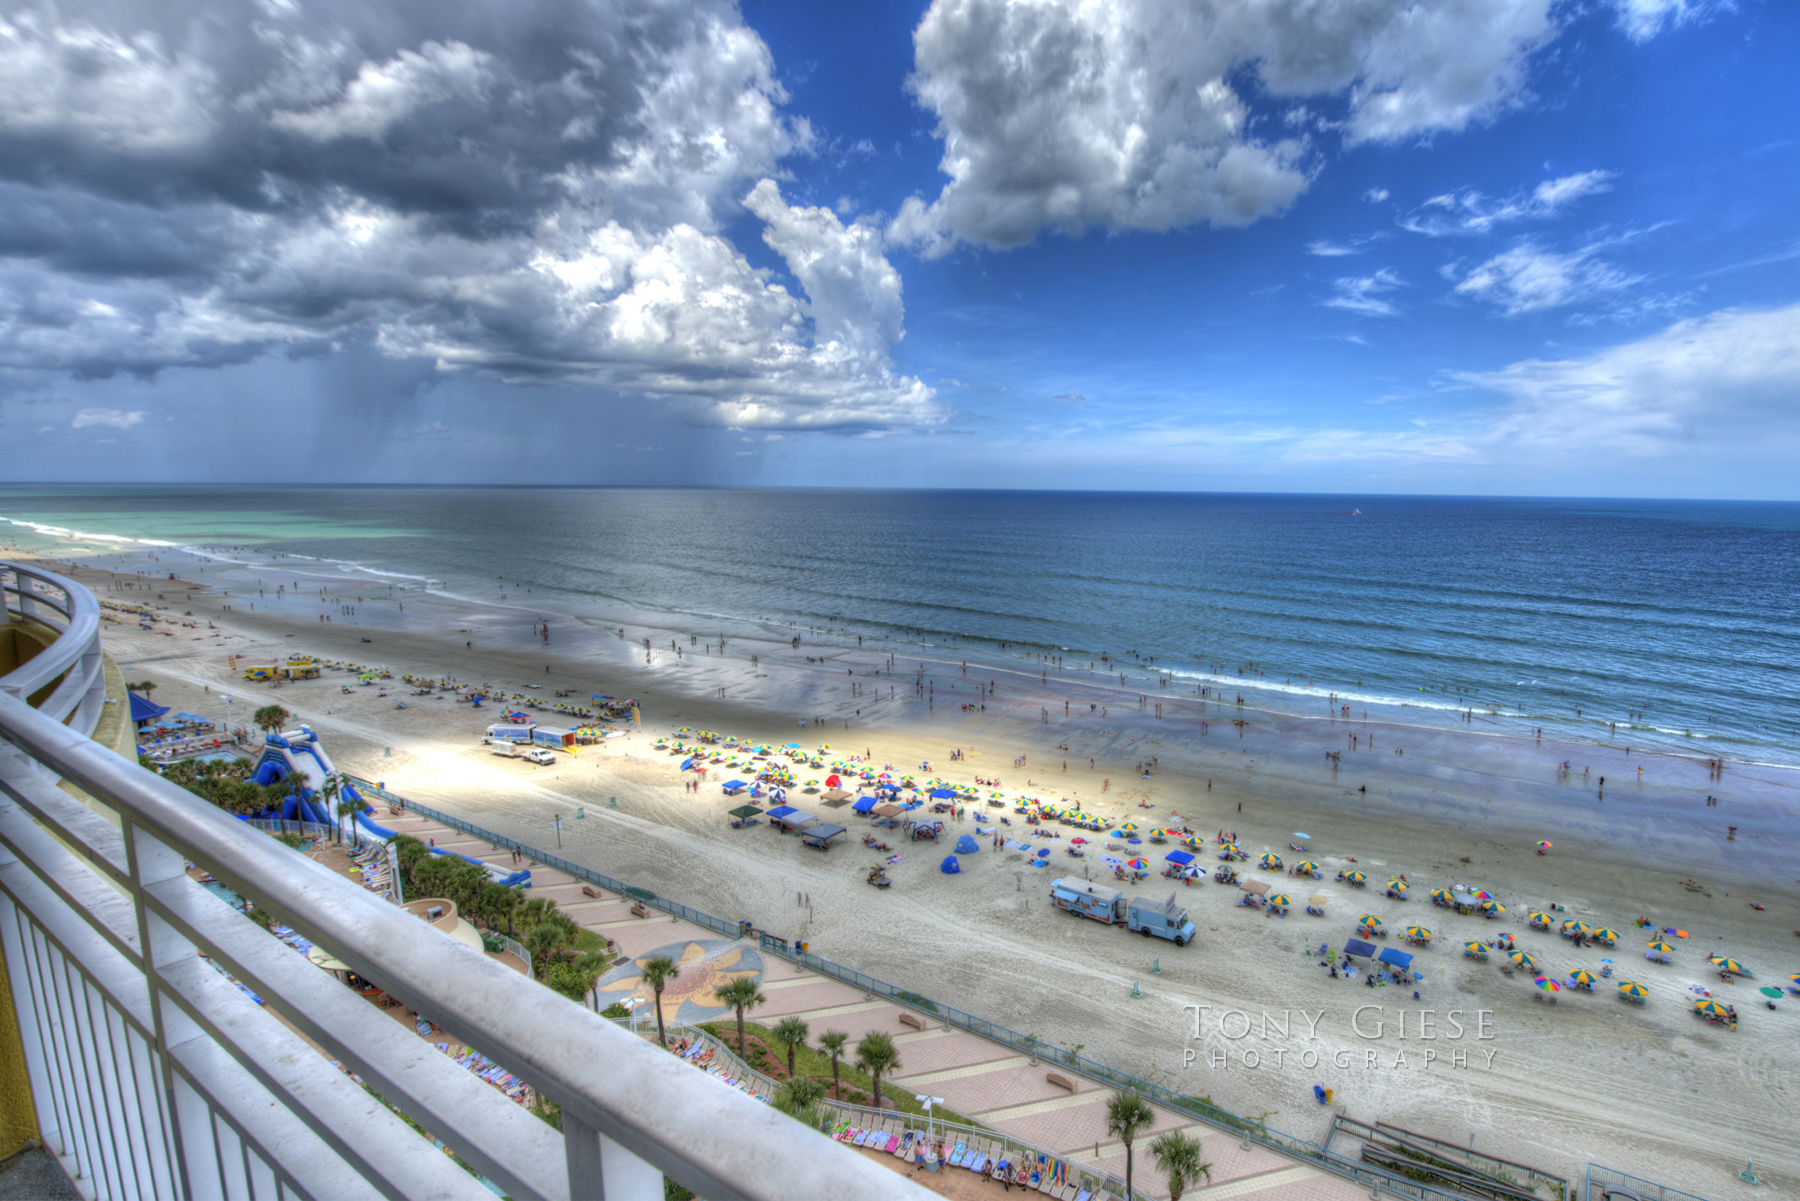 Wyndham Ocean Walk Resort condo balcony ocean view as rain starting to fall from clouds on a blue sky day overlooking Daytona Beach, Florida. Photography by Tony Giese